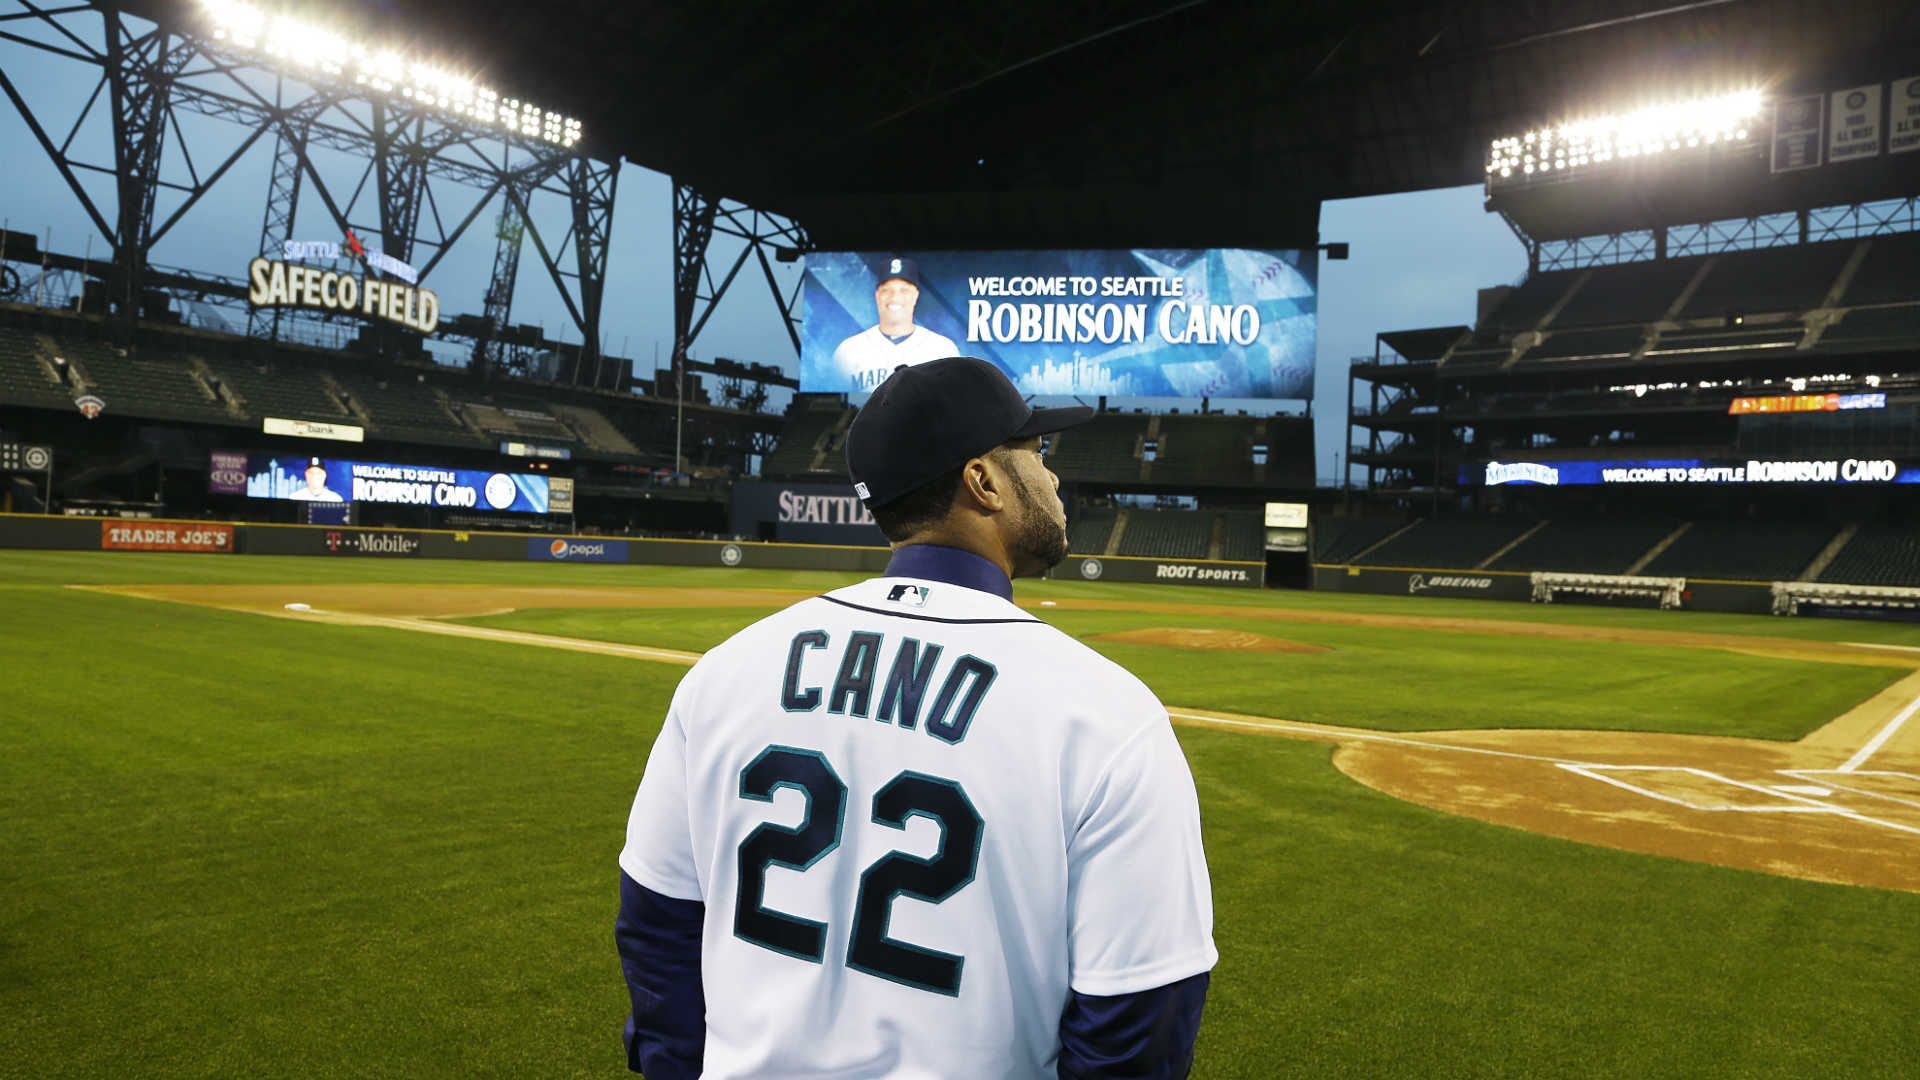 Fantasy baseball rankings: Are Safeco, Petco still pitcher-friendly ballparks?